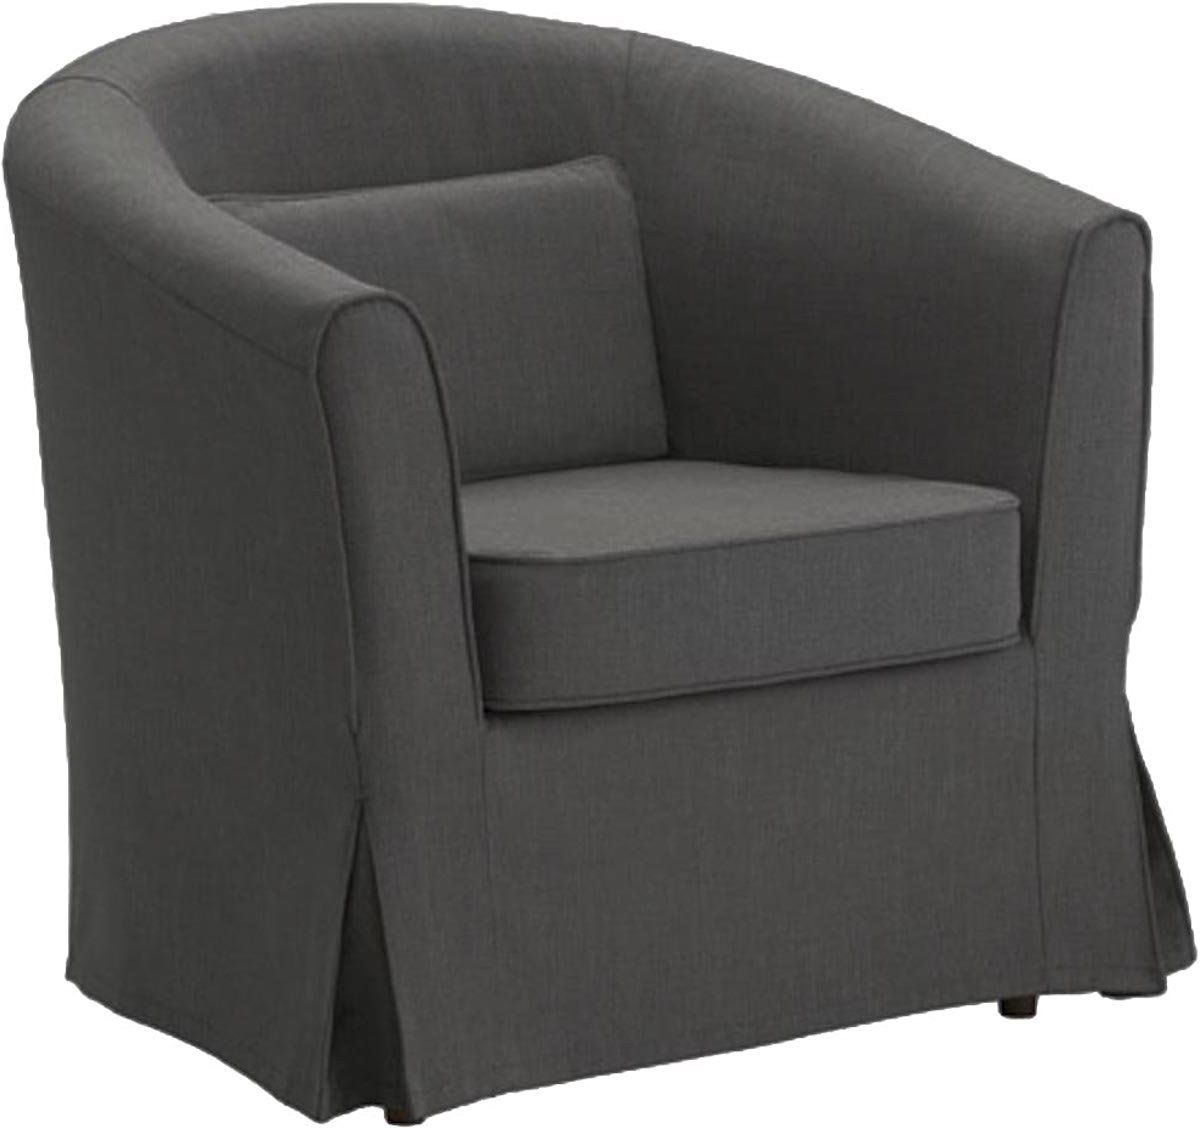 Favorite Ikea Sofa Chairs Intended For Cheap Sofa Chair Ikea, Find Sofa Chair Ikea Deals On Line At Alibaba (View 2 of 20)